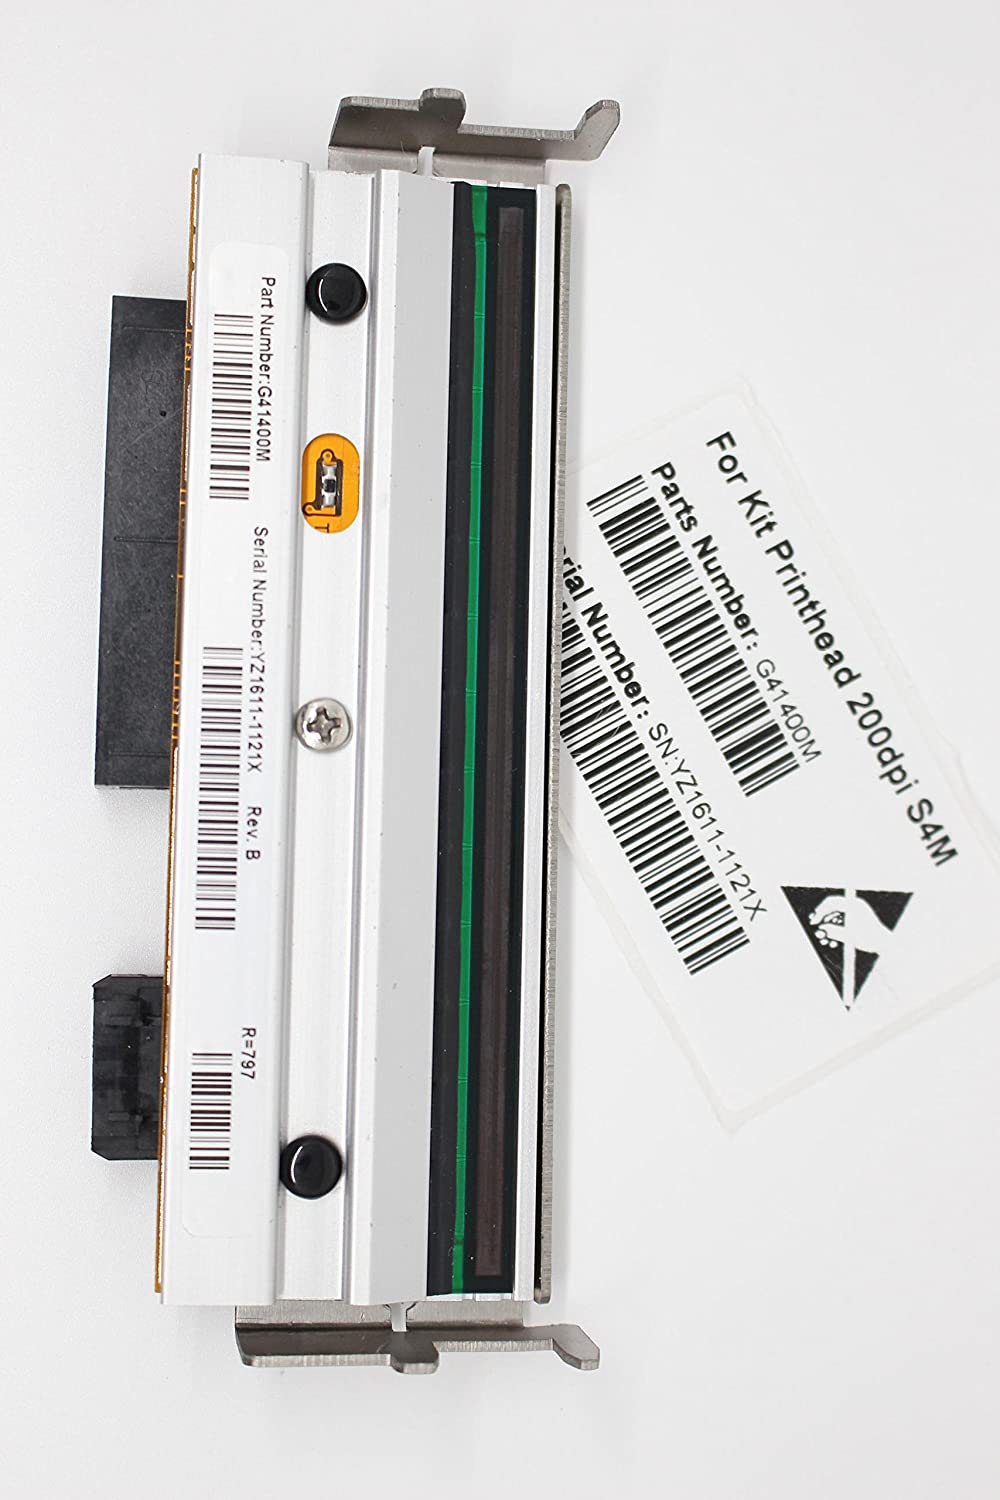 Thermal Print Head Printhead for Zebra S4M Barcode Printer 203dpi G41400M Print Head ZUYE